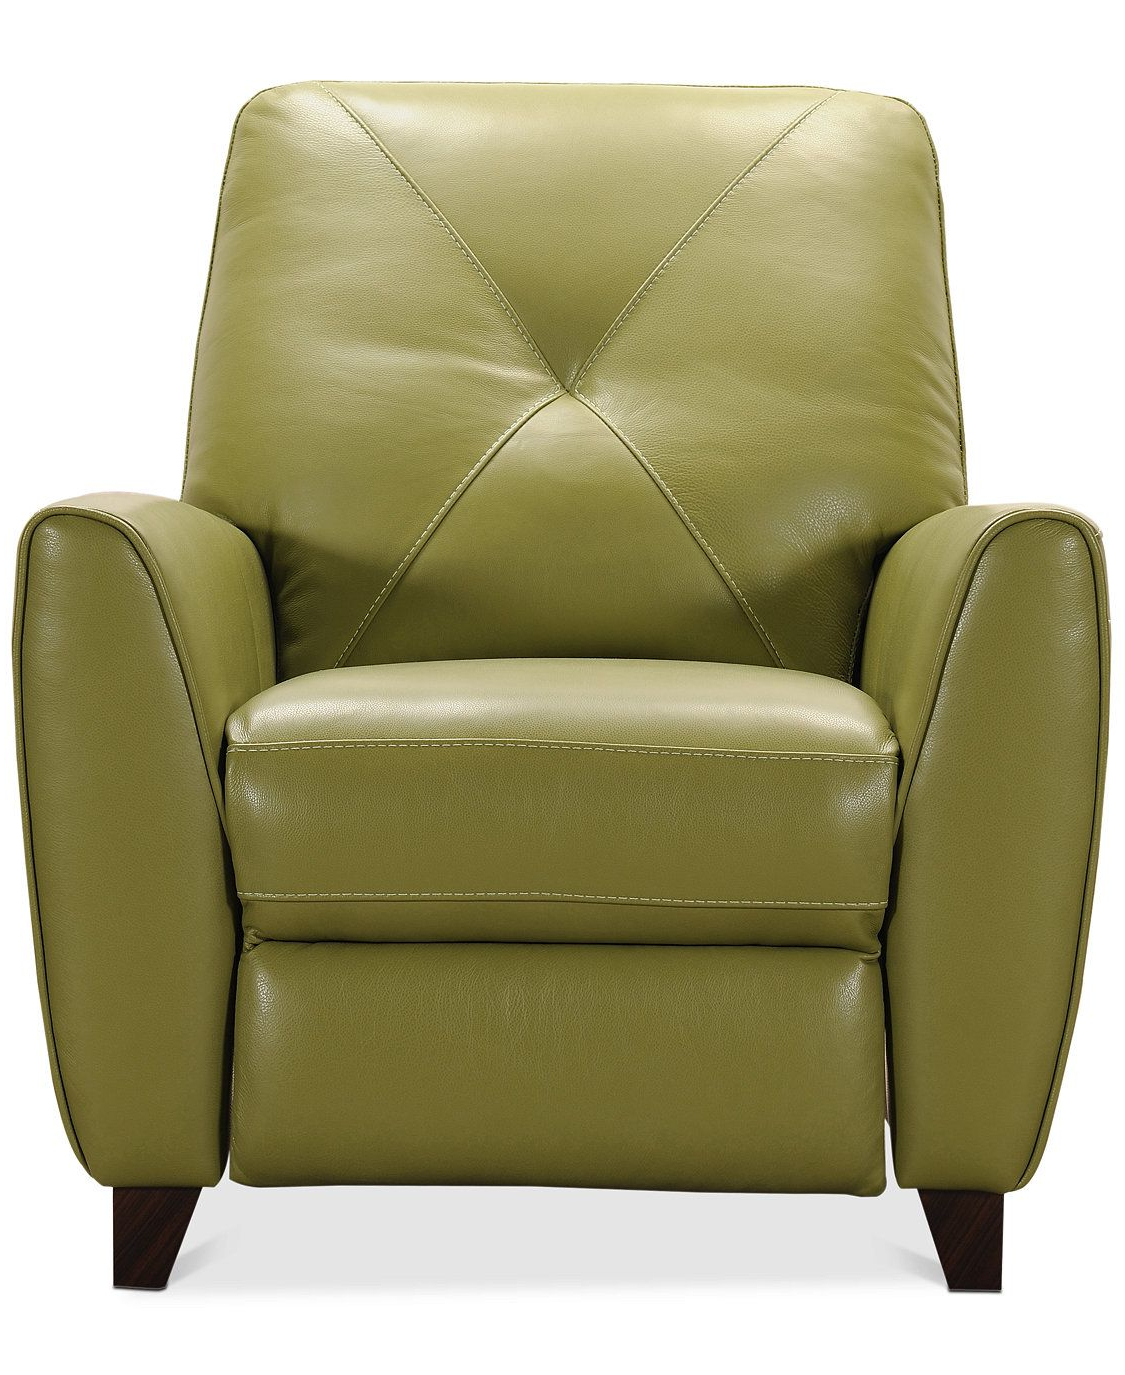 Most Up To Date Furniture Myia Leather Pushback Recliner, Created For Macy's Inside Myia Armchairs (View 8 of 20)